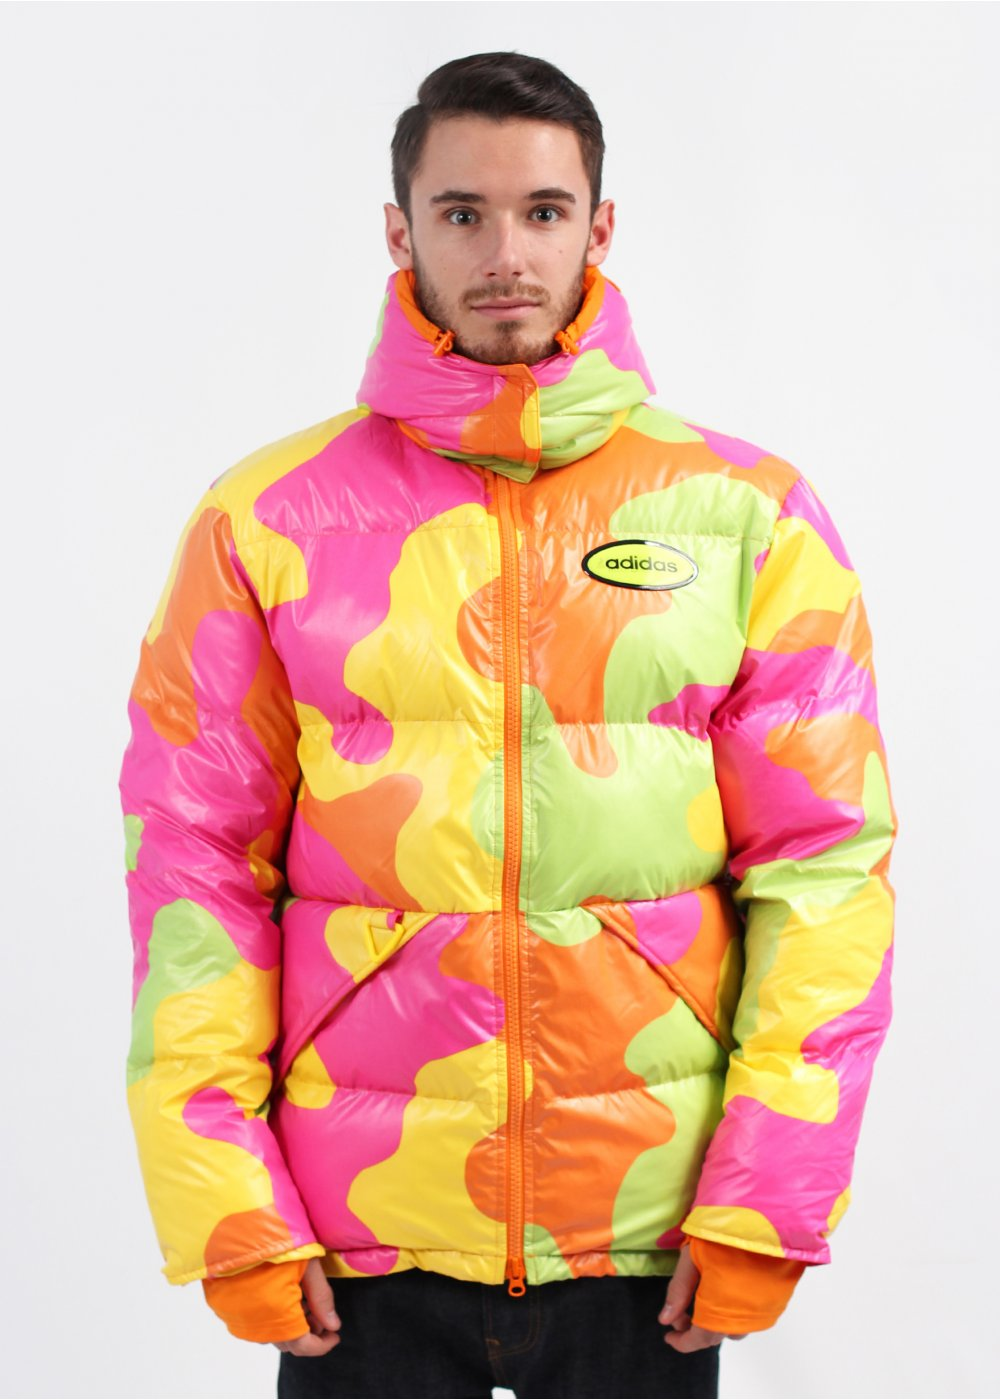 adidas x jeremy scott jacket